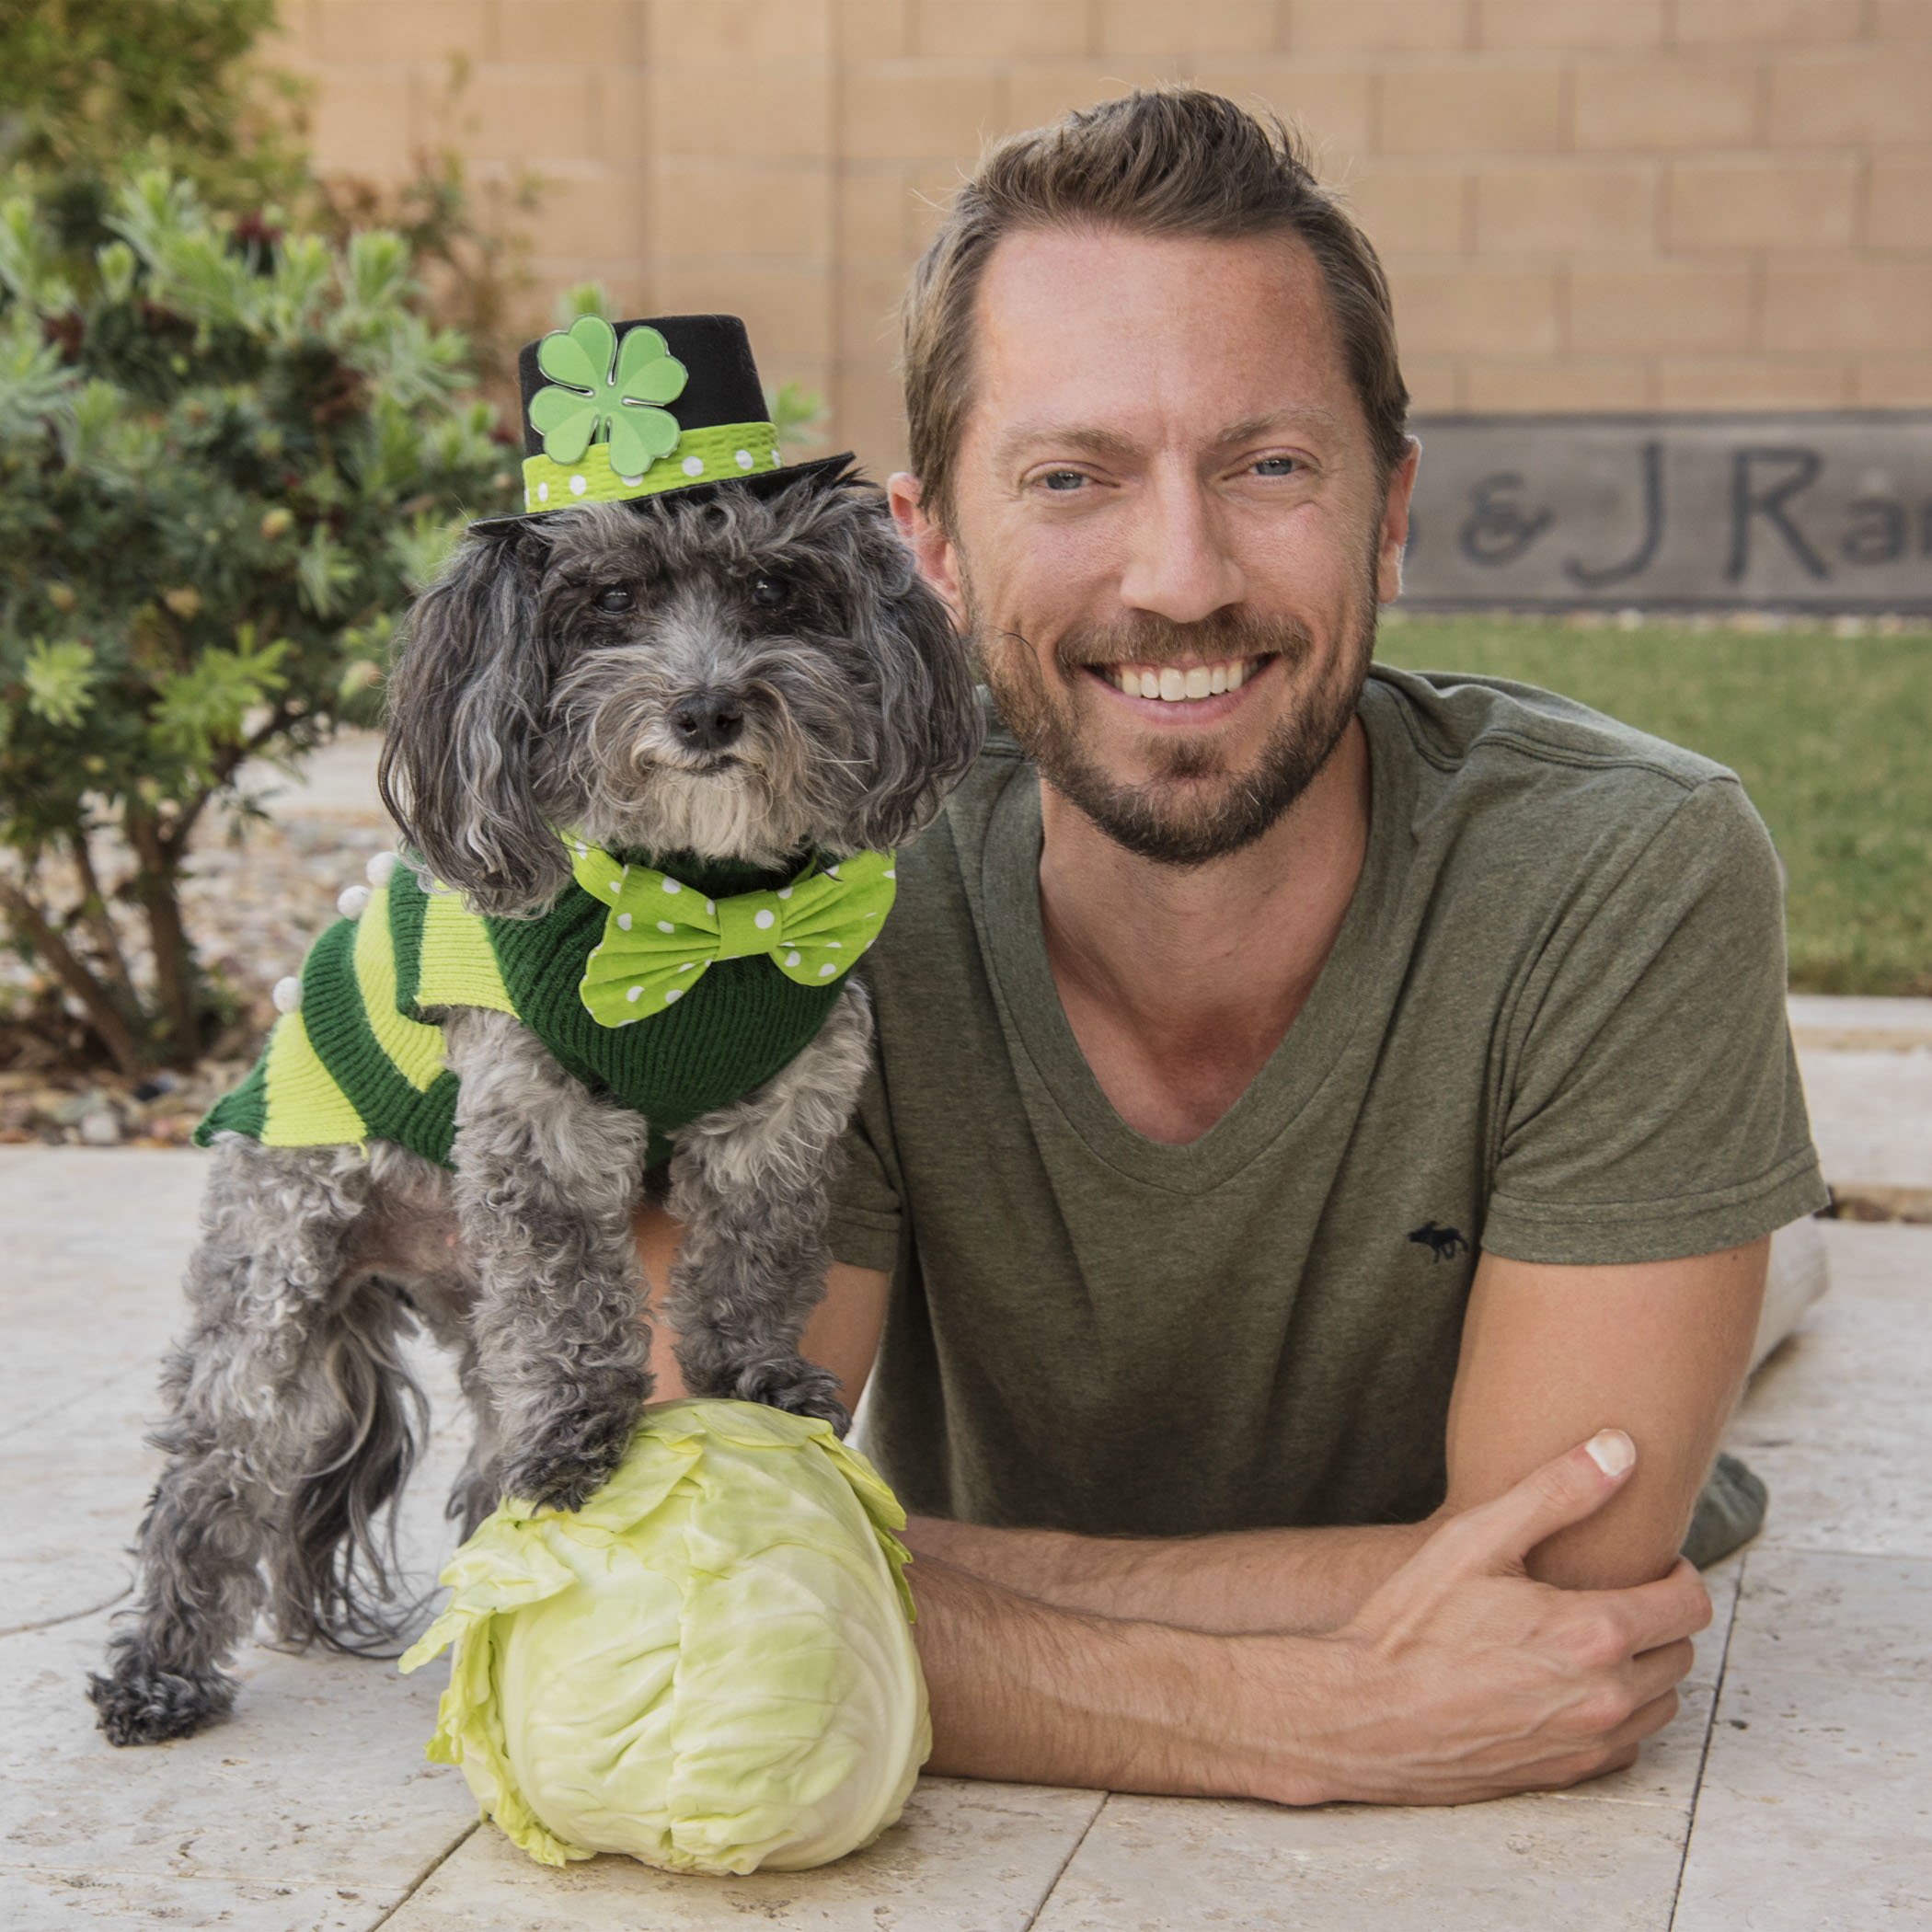 Riddle 3 - I'm a yummy addition to your St. Patrick's Day dinner. If you eat me a lot you might even get slimmer! What am I?   Answer - Cabbage